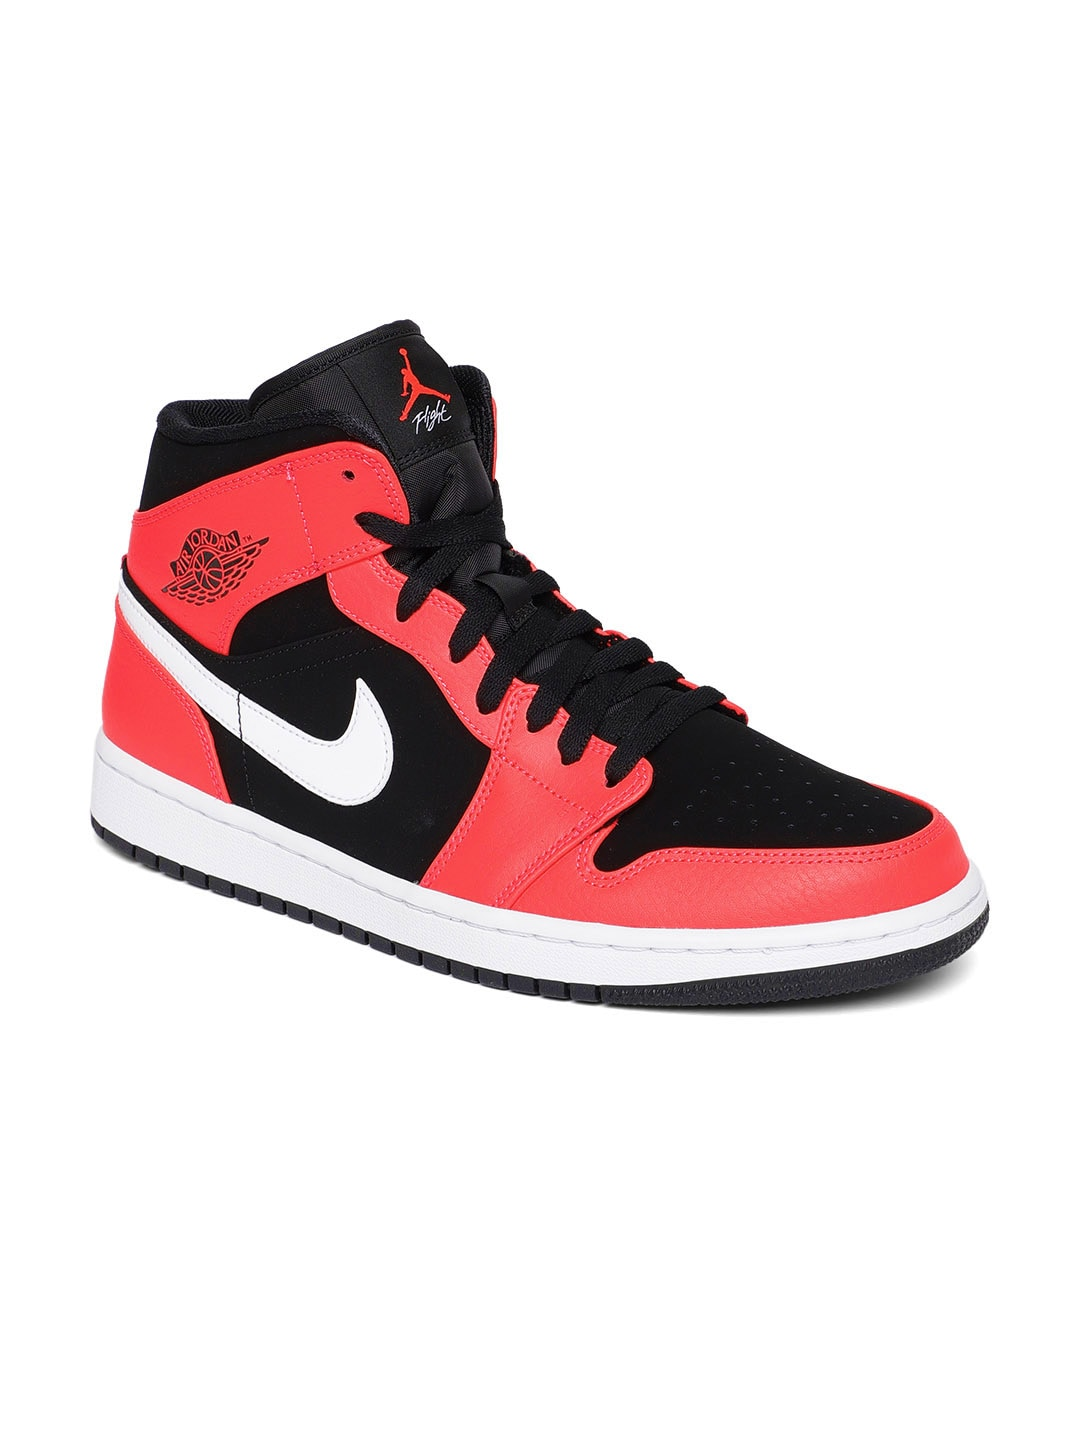 new arrival be8c4 95711 Jordan Shoes - Buy Jordan Shoes For Men Online in India   Myntra